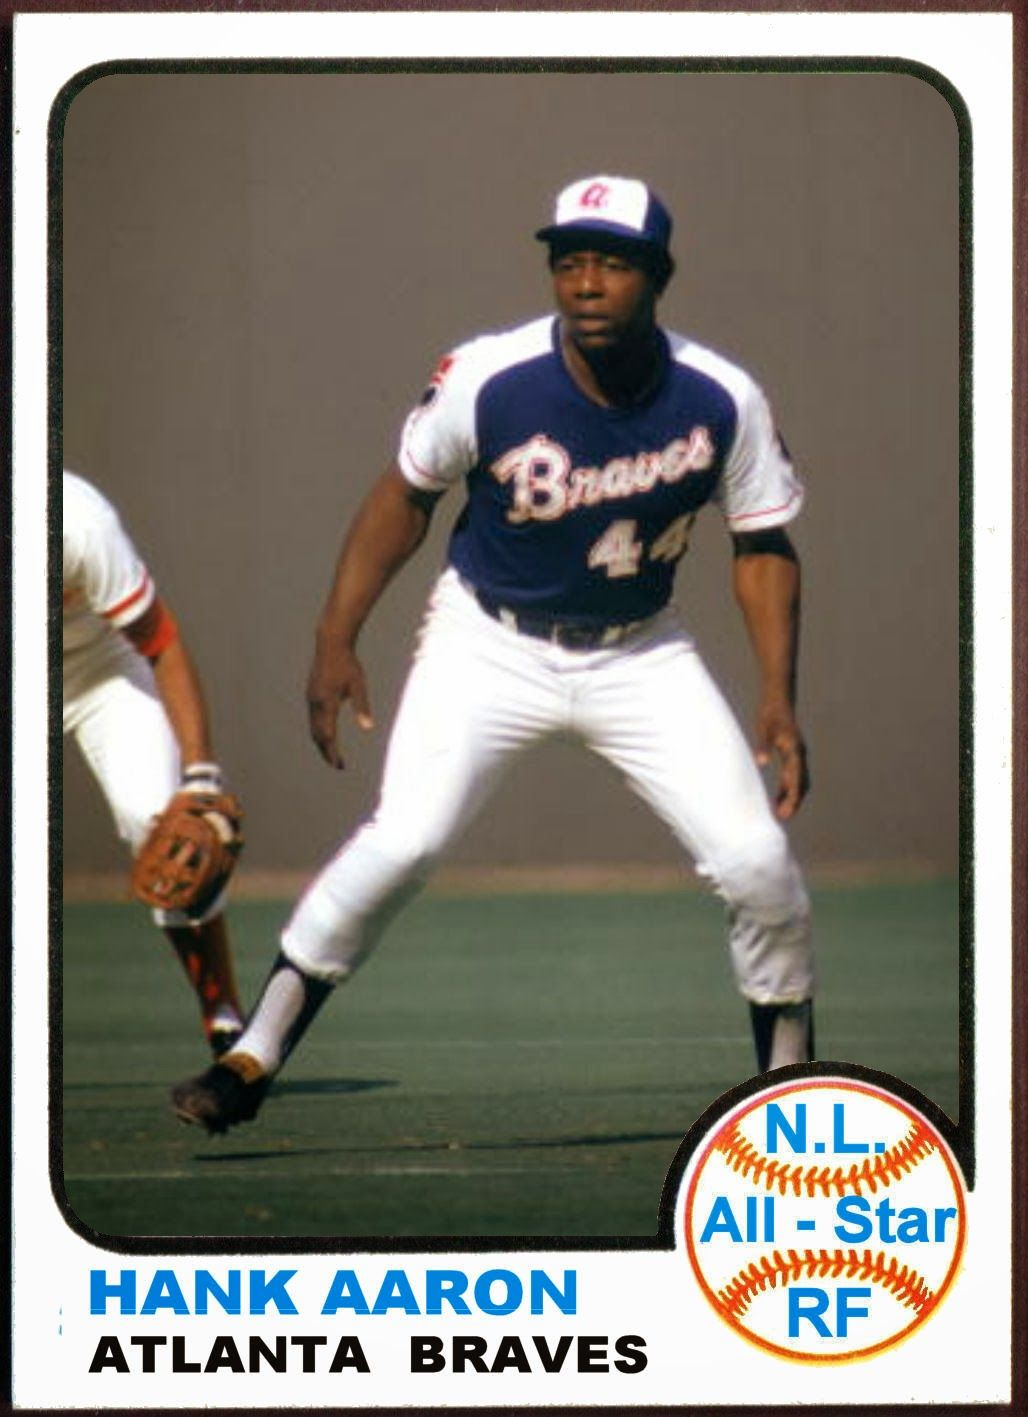 1973 Topps Hank Aaron All Star Baseball Cards That Never